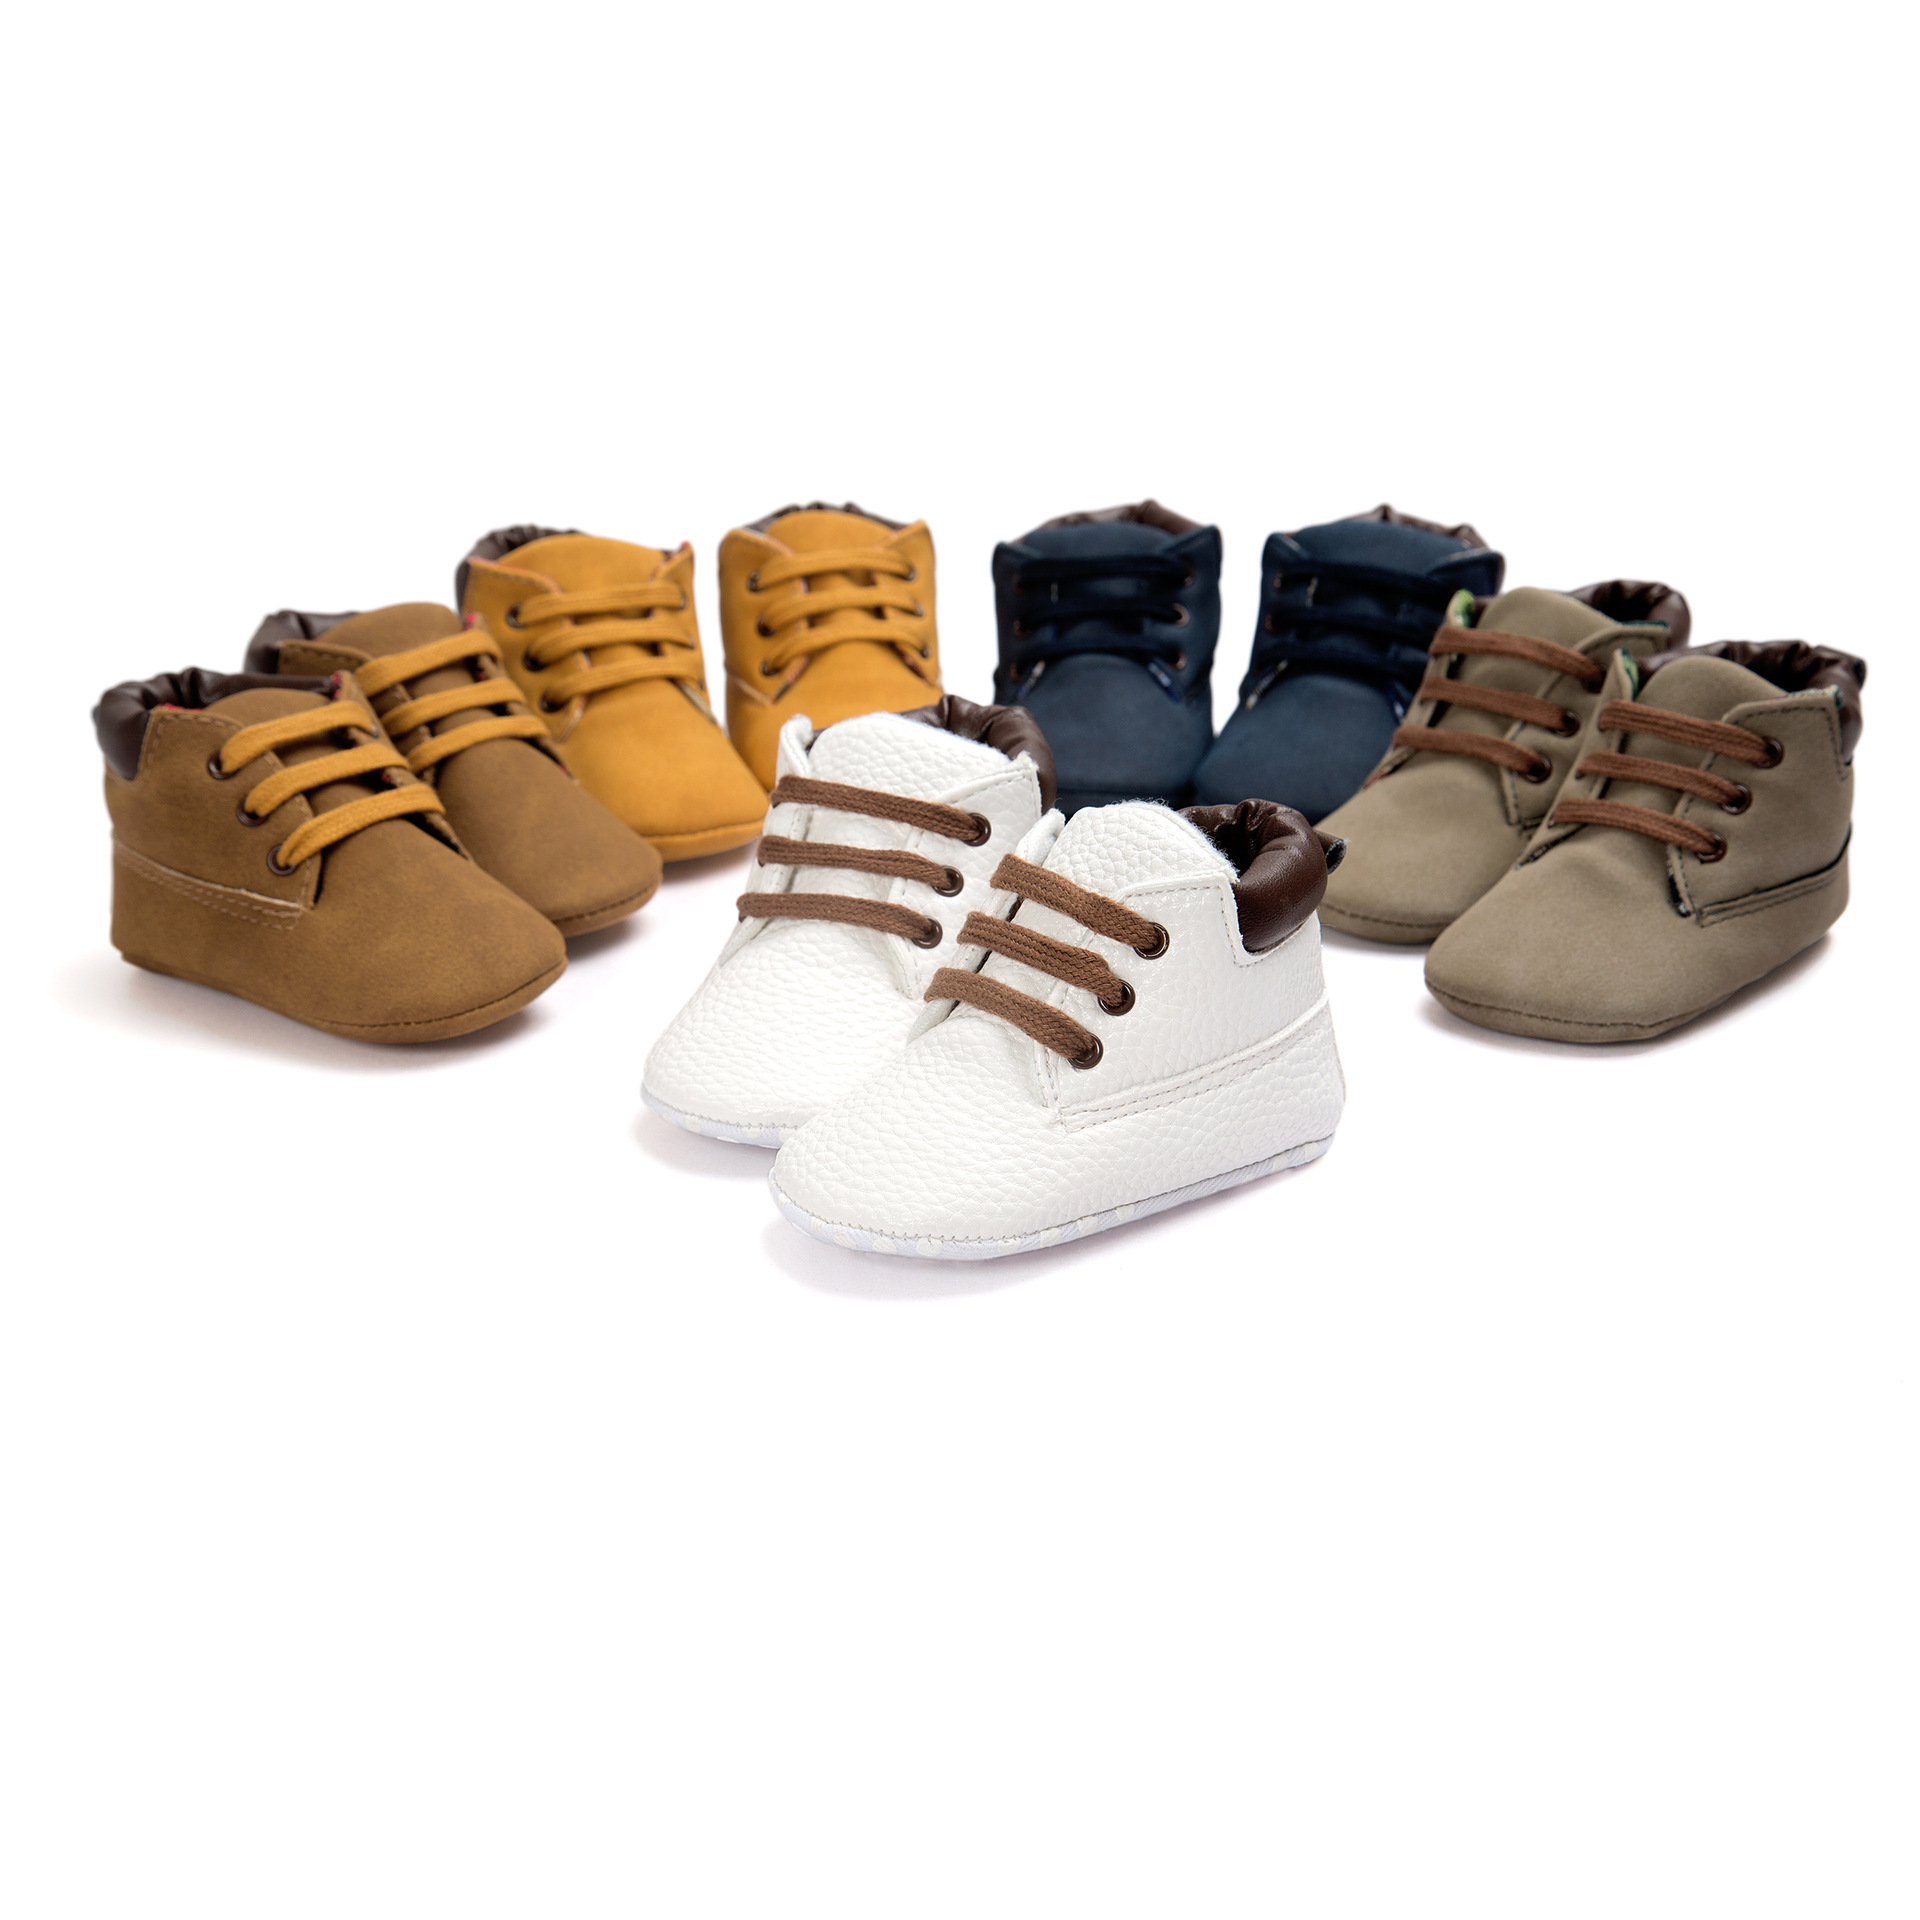 ROMIRUS Baby First Walkers Baby Sko Soft Bottom Fashion Kvaster Baby Moccasin Non-slip PU Leather Prewalkers Støvler